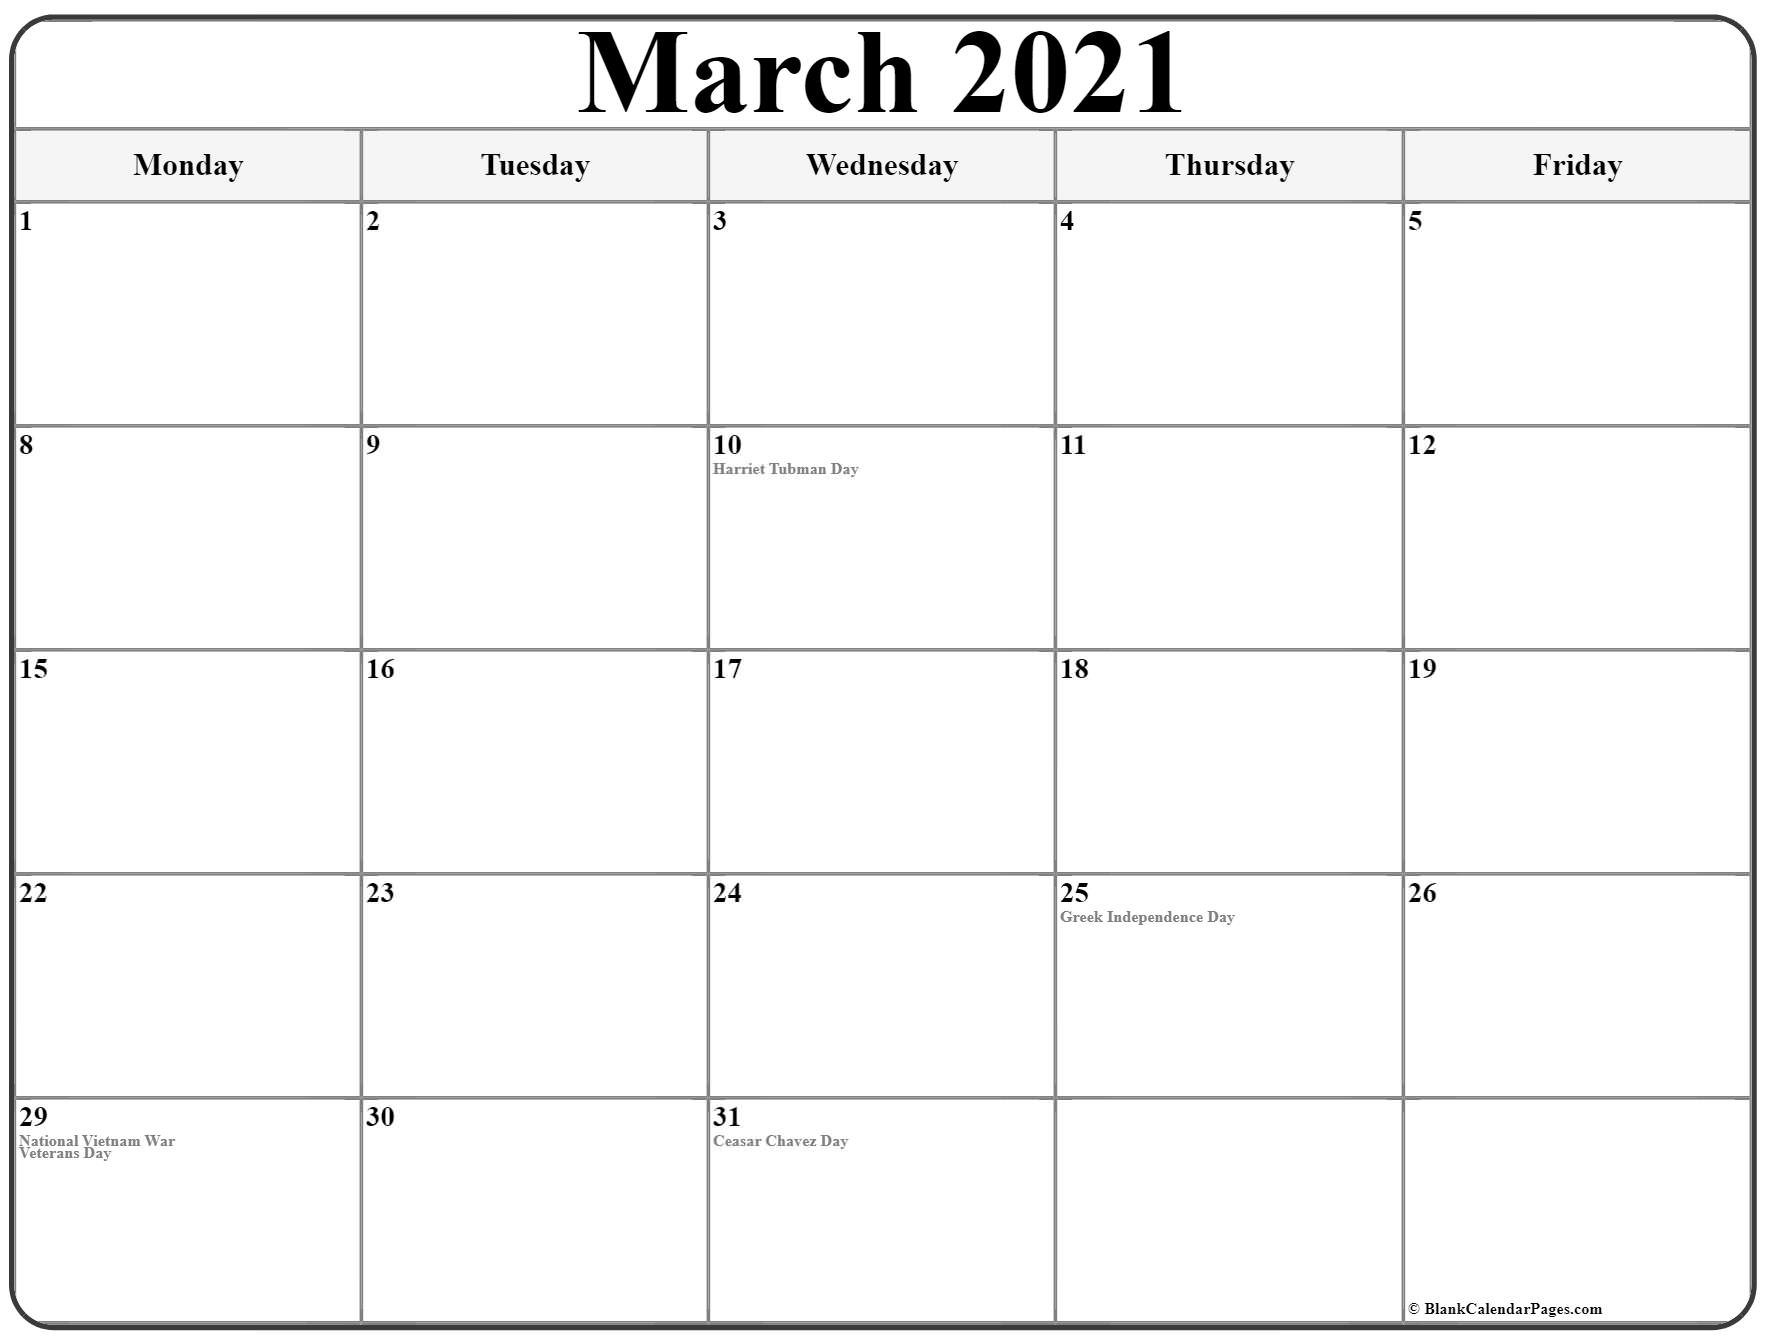 March 2021 Monday Calendar | Monday To Sunday Printable Calendar Monday- Friday